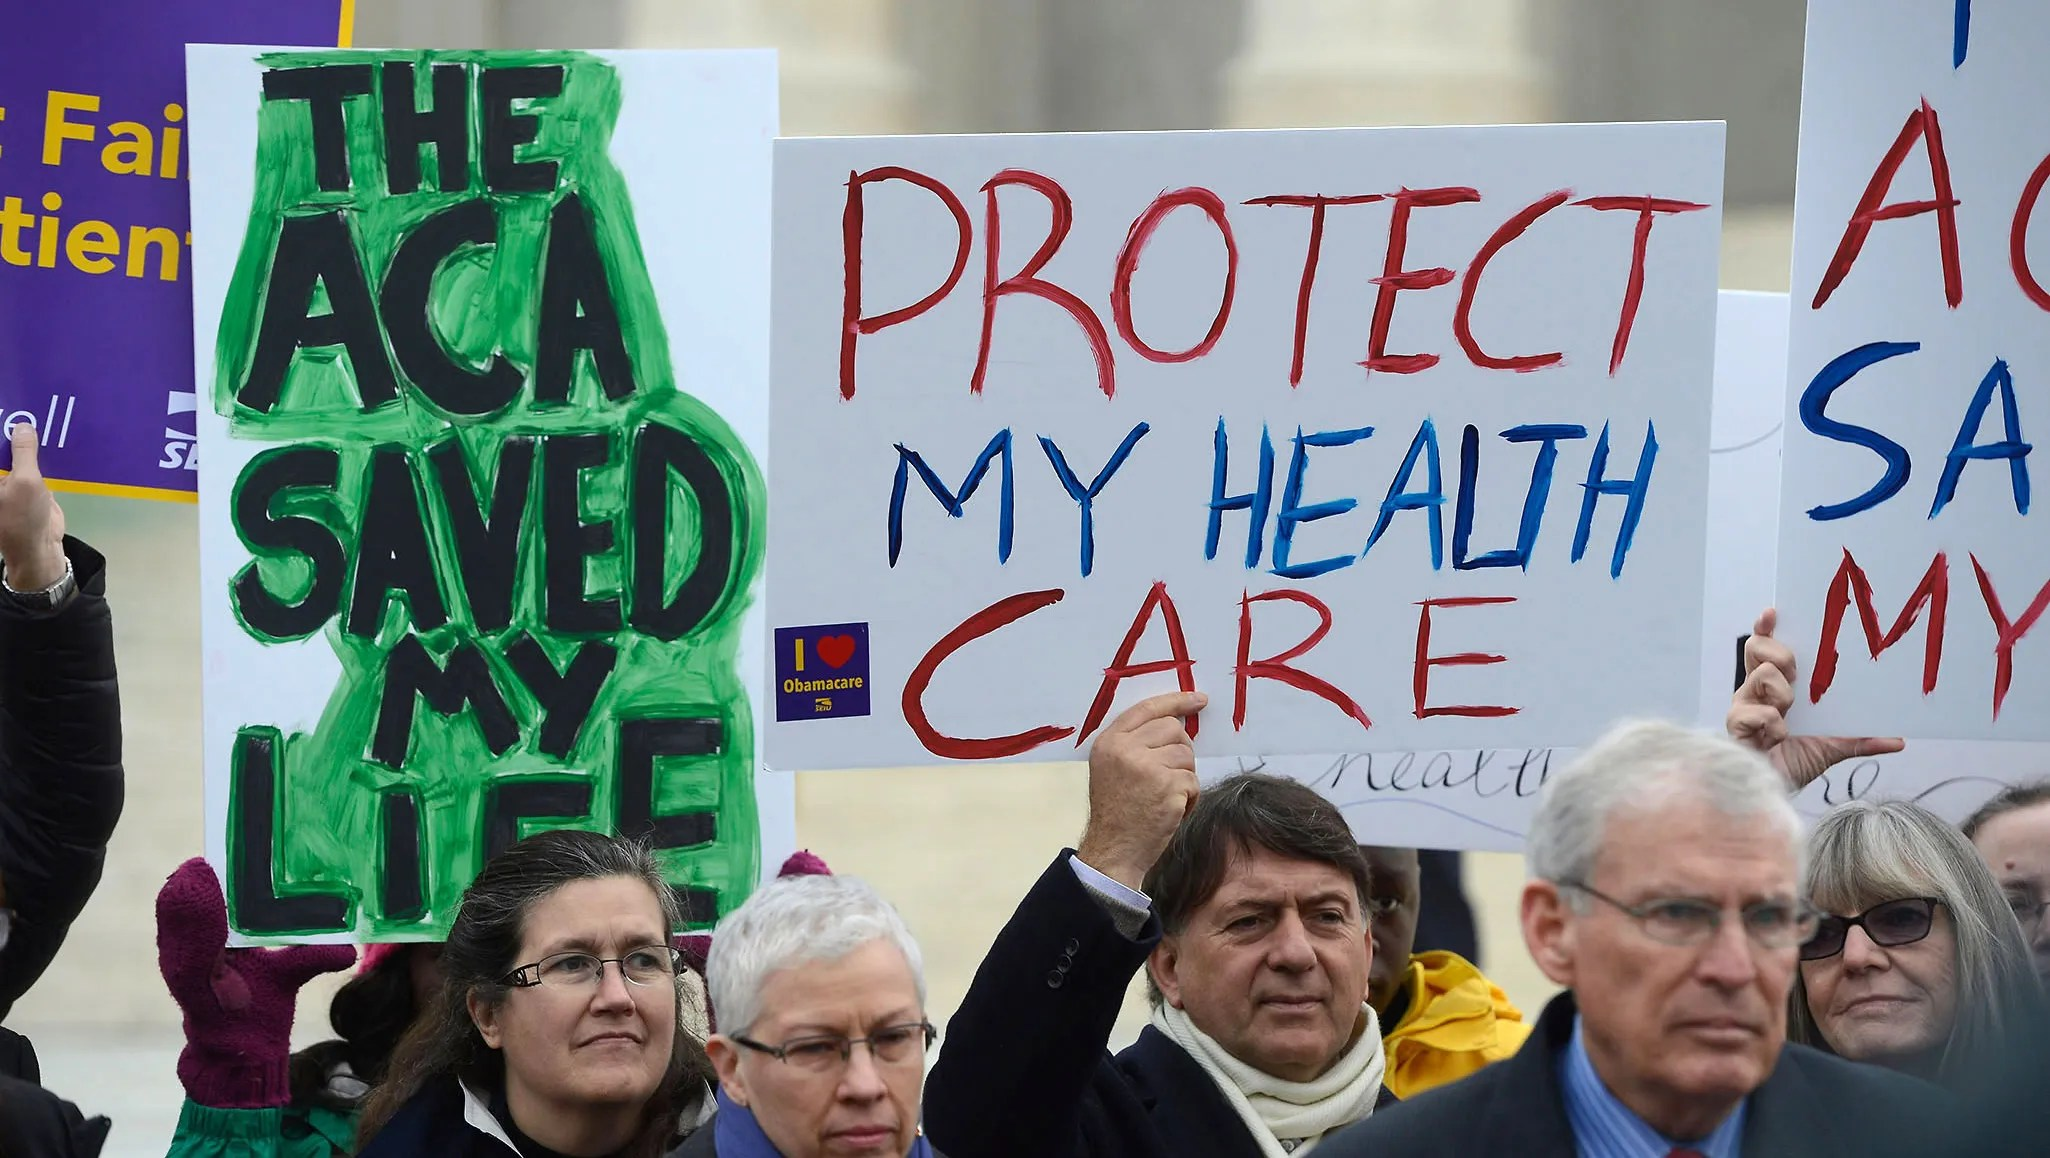 Supporters of the Affordable Care Act demonstrated outside the Supreme Court during oral arguments in 2015.